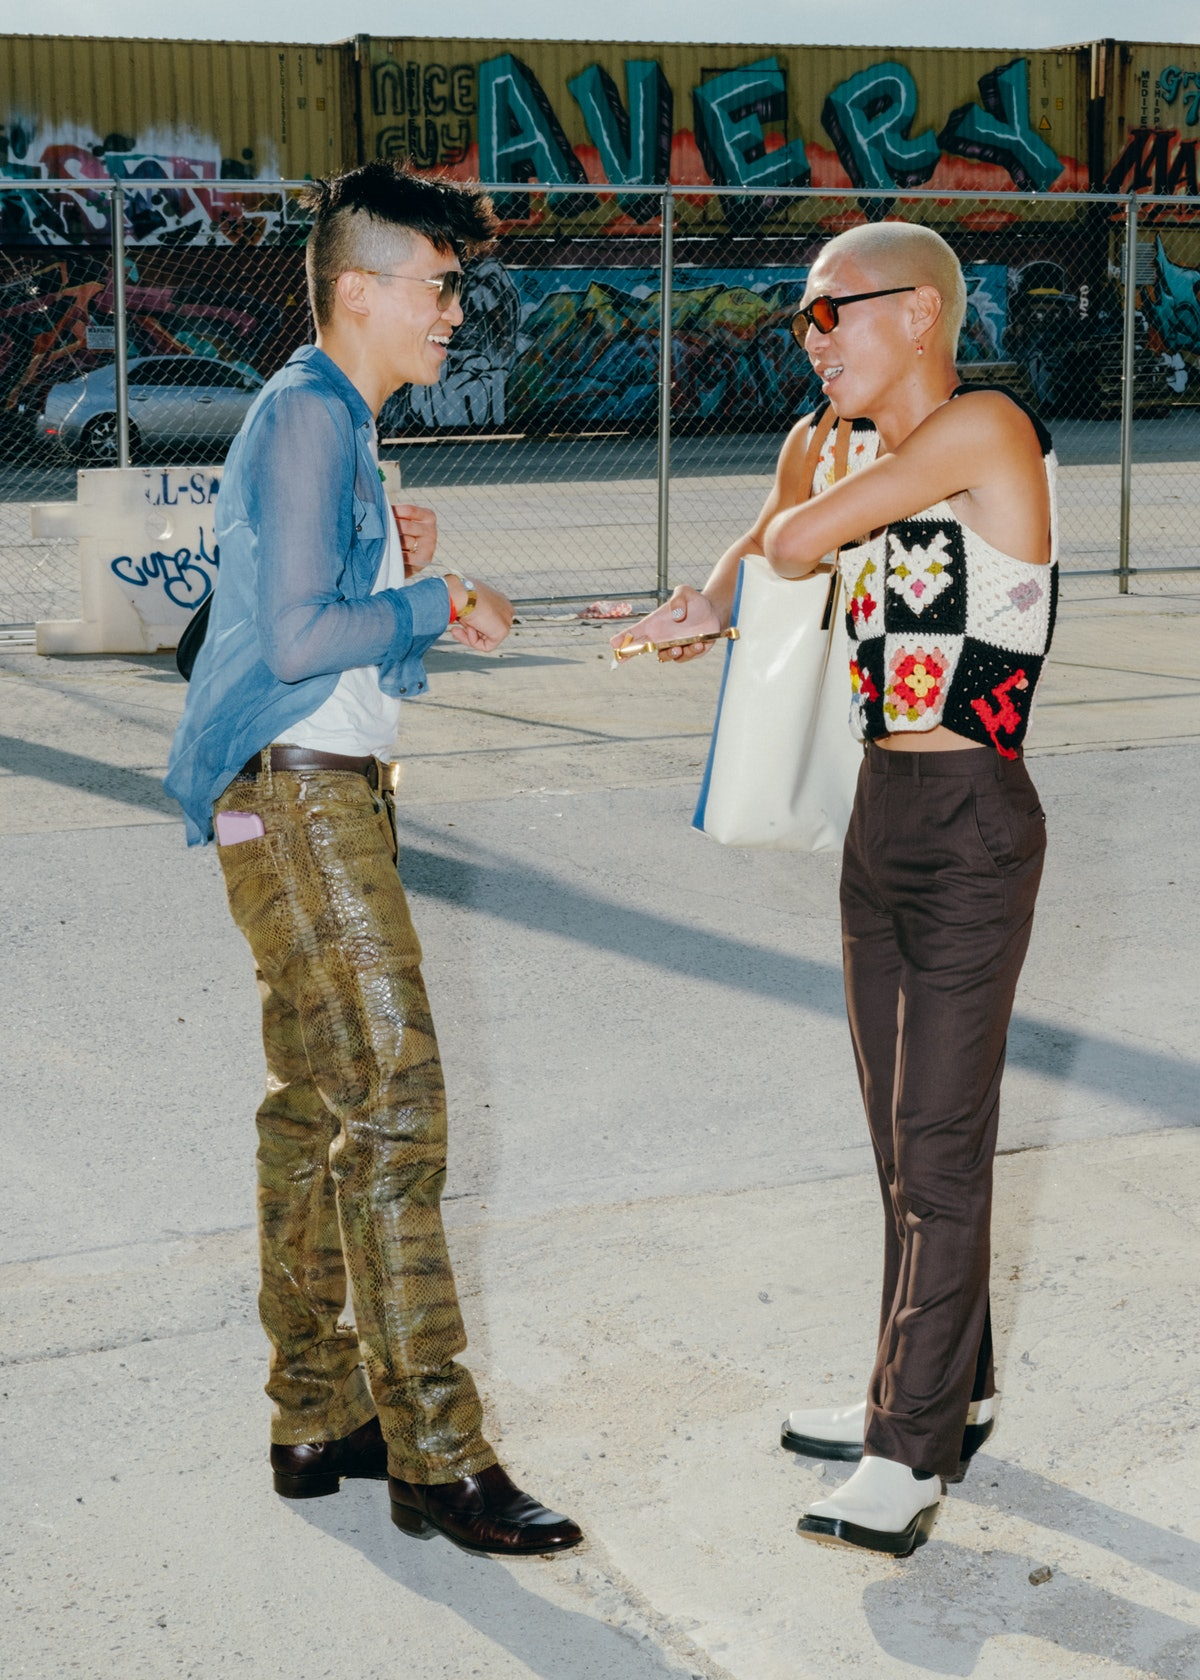 Two friends are talking in the street.  Both wear tight pants and shirts.